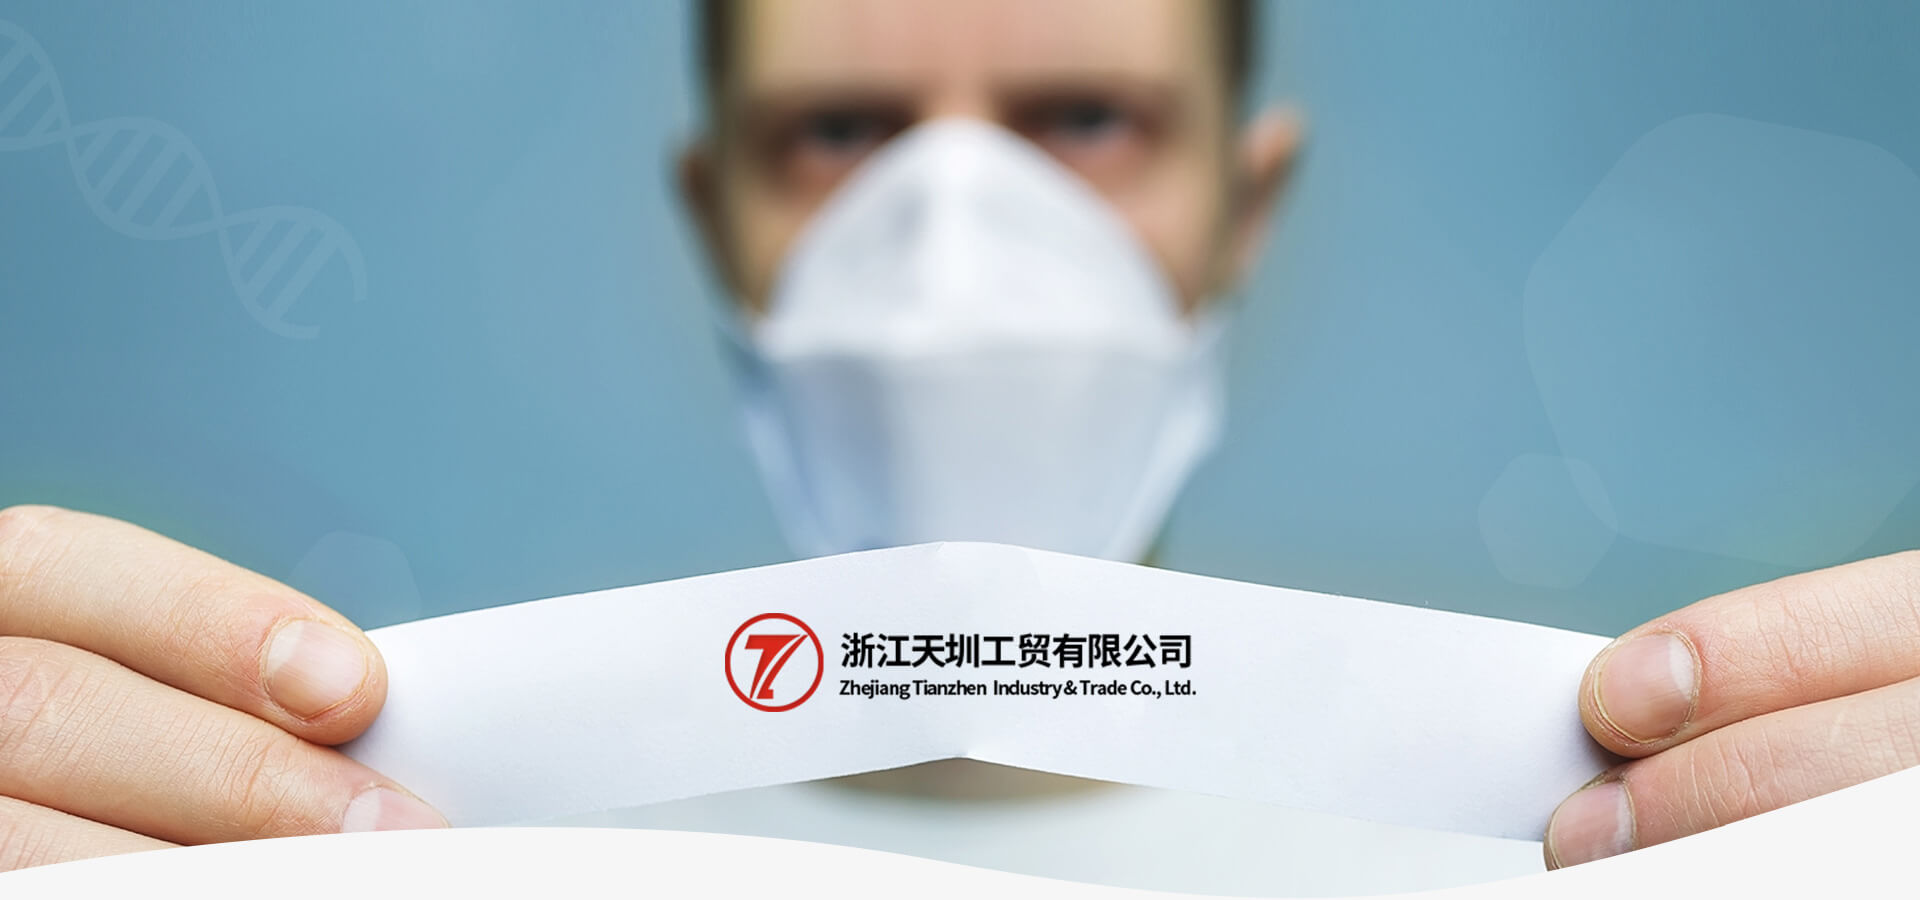 Questions and answers about smog and protective masks